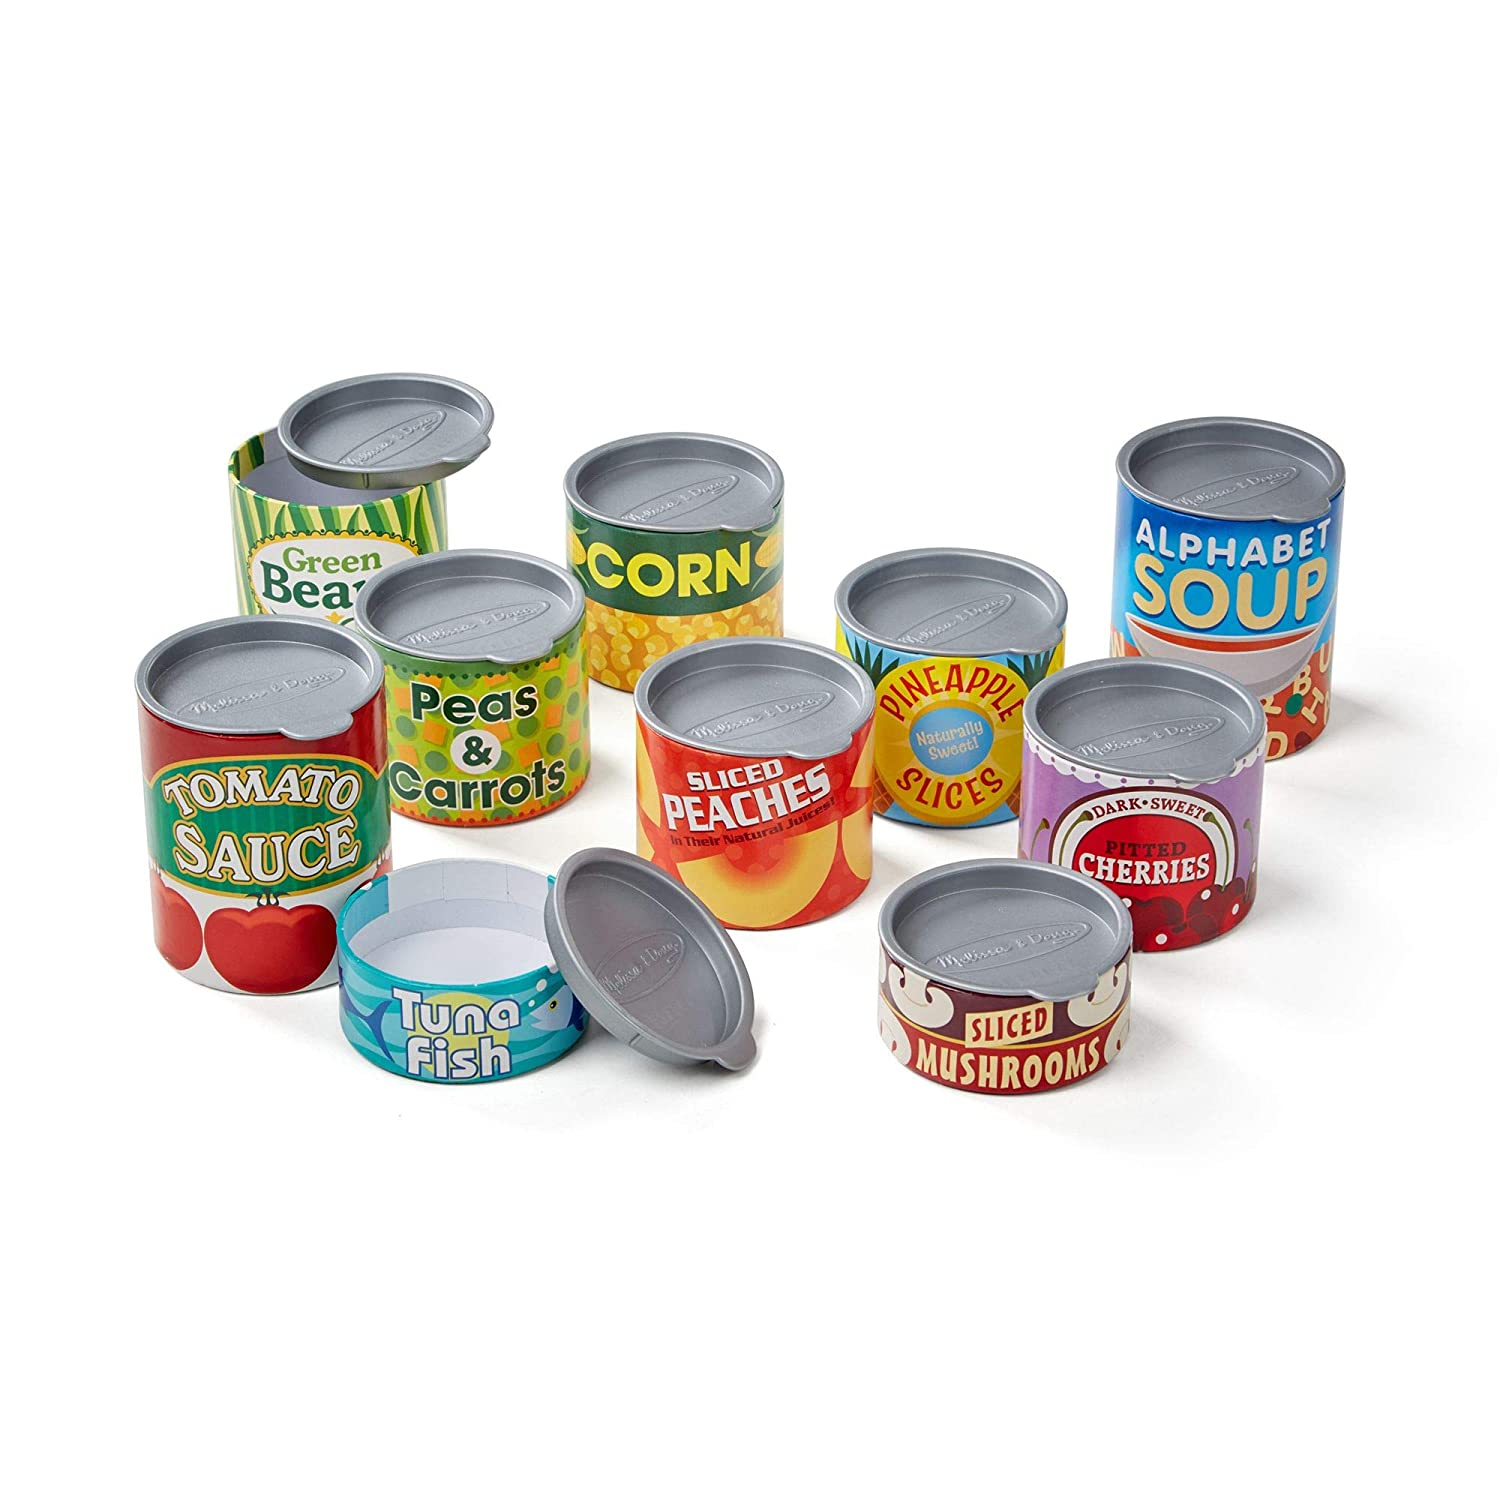 "Melissa & Doug Let's Play House! Grocery Cans, Pretend Play, Pop-Off Lids, Sturdy Cardboard construction, 10 Cans, 13"" H x 5"" W x 2.75"" L"